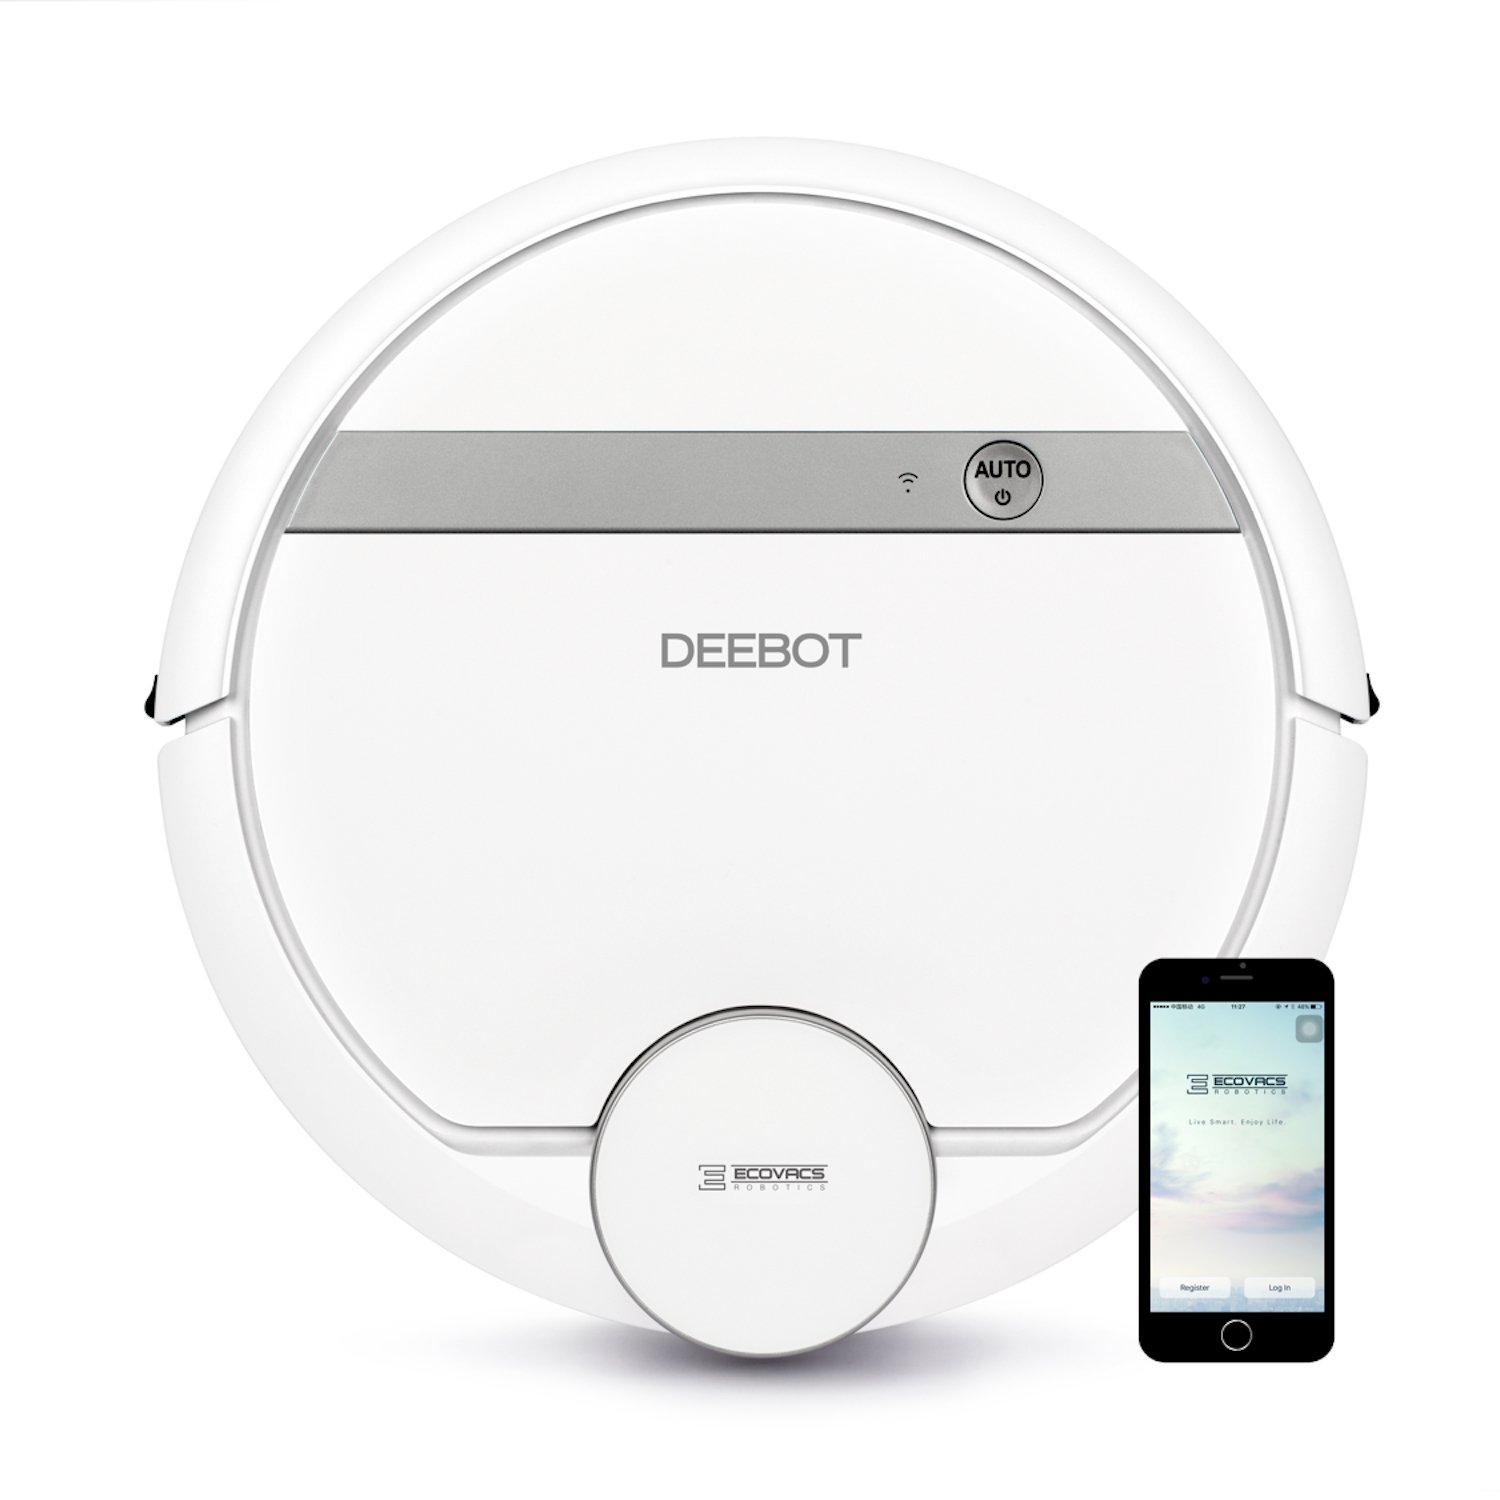 Ecovacs Deebot 900 Smart Robotic Vacuum For Carpet Bmw R90 6 Wiring Diagram Bare Floors Pet Hair With Mapping Technology Higher Suction Power Wifi Connected And